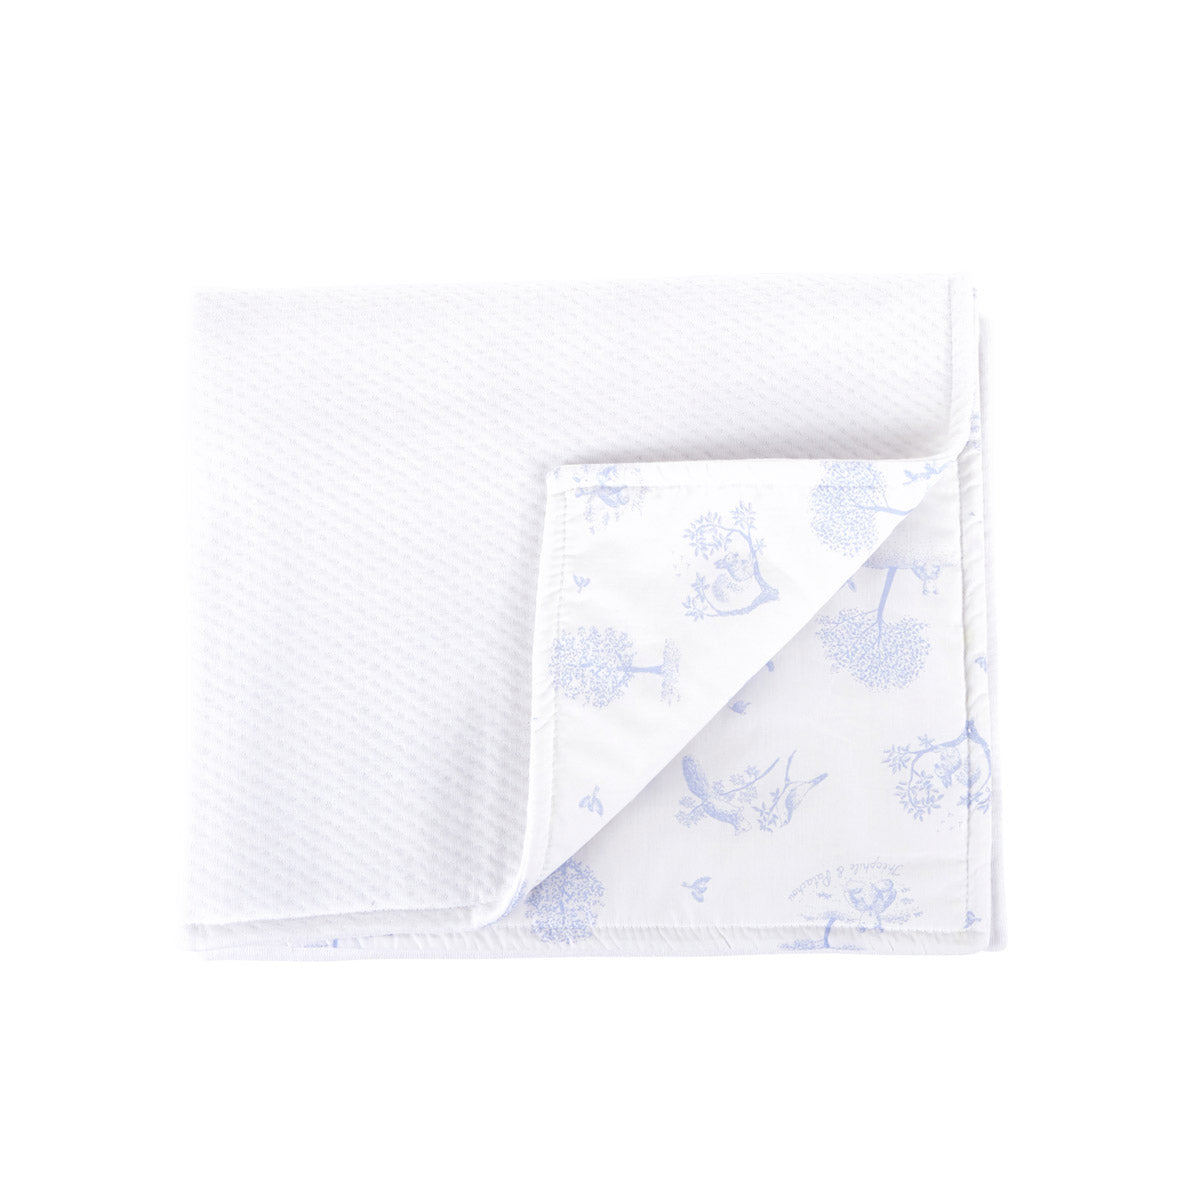 Theophile & Patachou Cradle Blanket - Sweet Blue / White